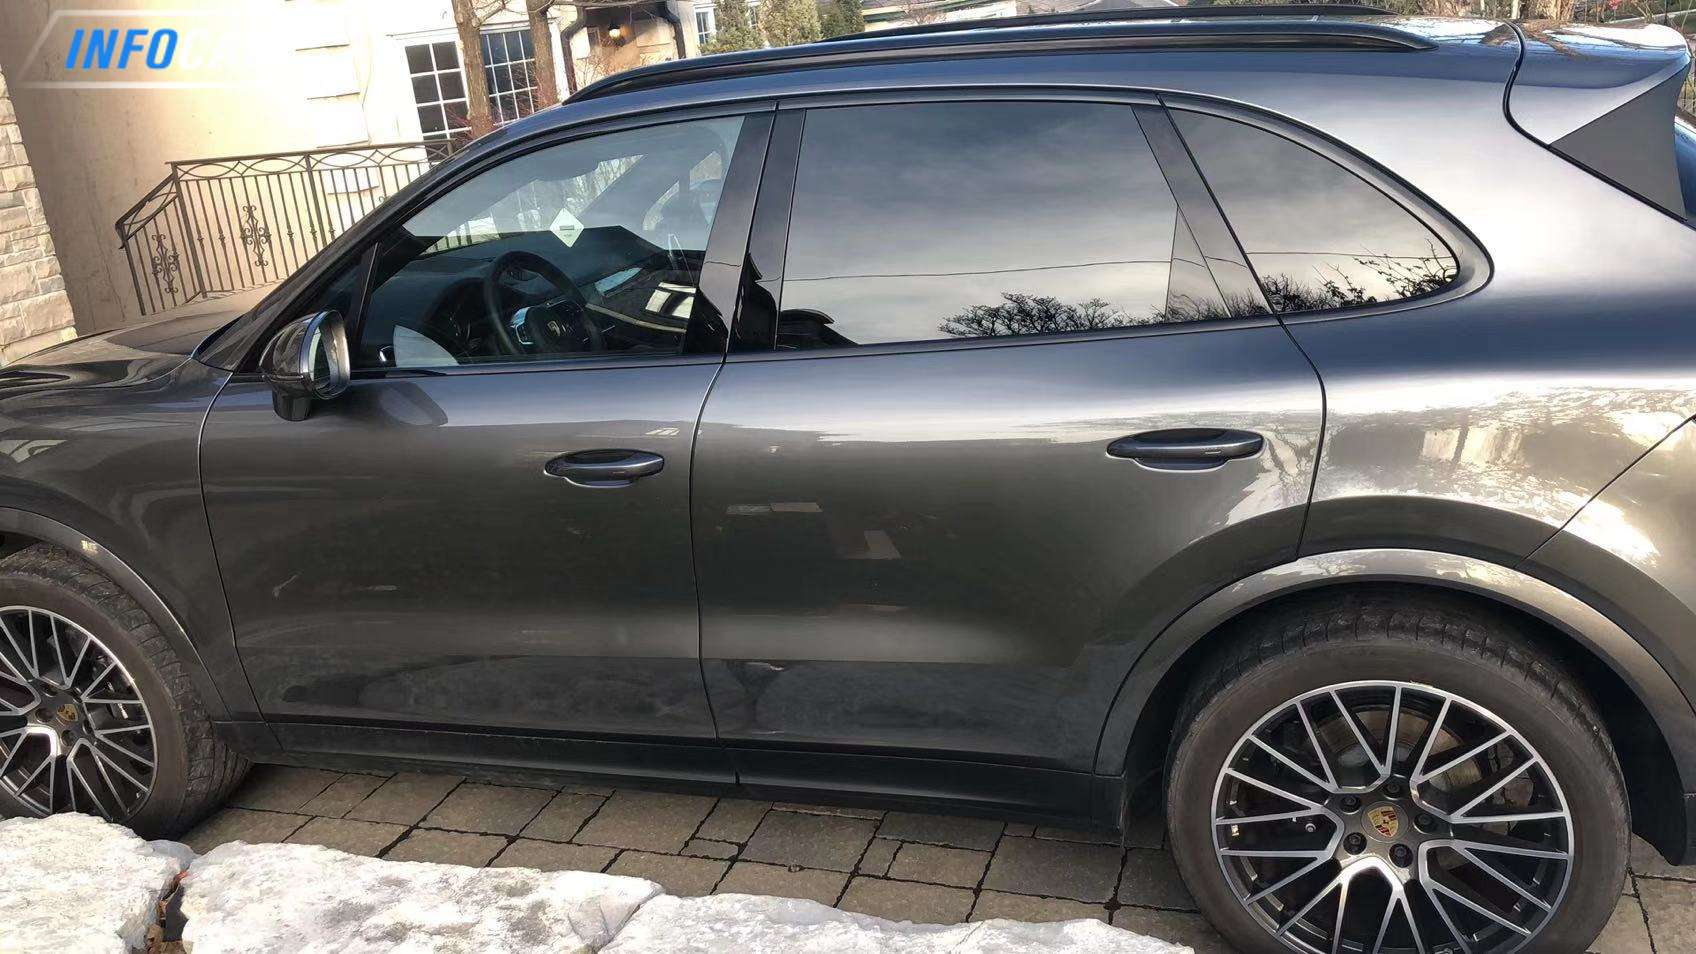 2019 Porsche Cayenne s - INFOCAR - Toronto's Most Comprehensive New and Used Auto Trading Platform